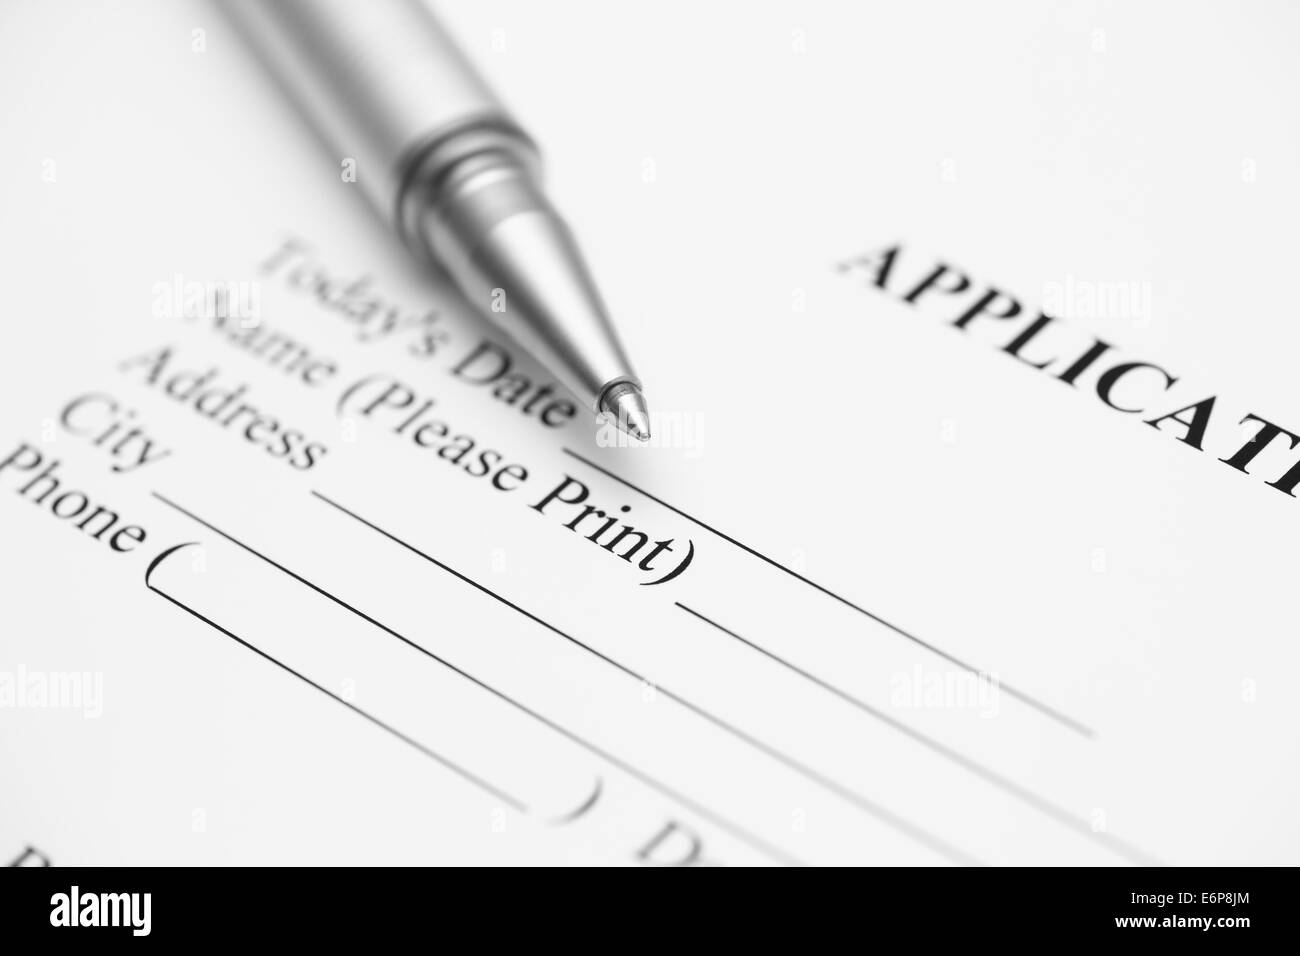 Application form and ballpoint pen. Focus on the end of ballpoint pen. Black and White. - Stock Image